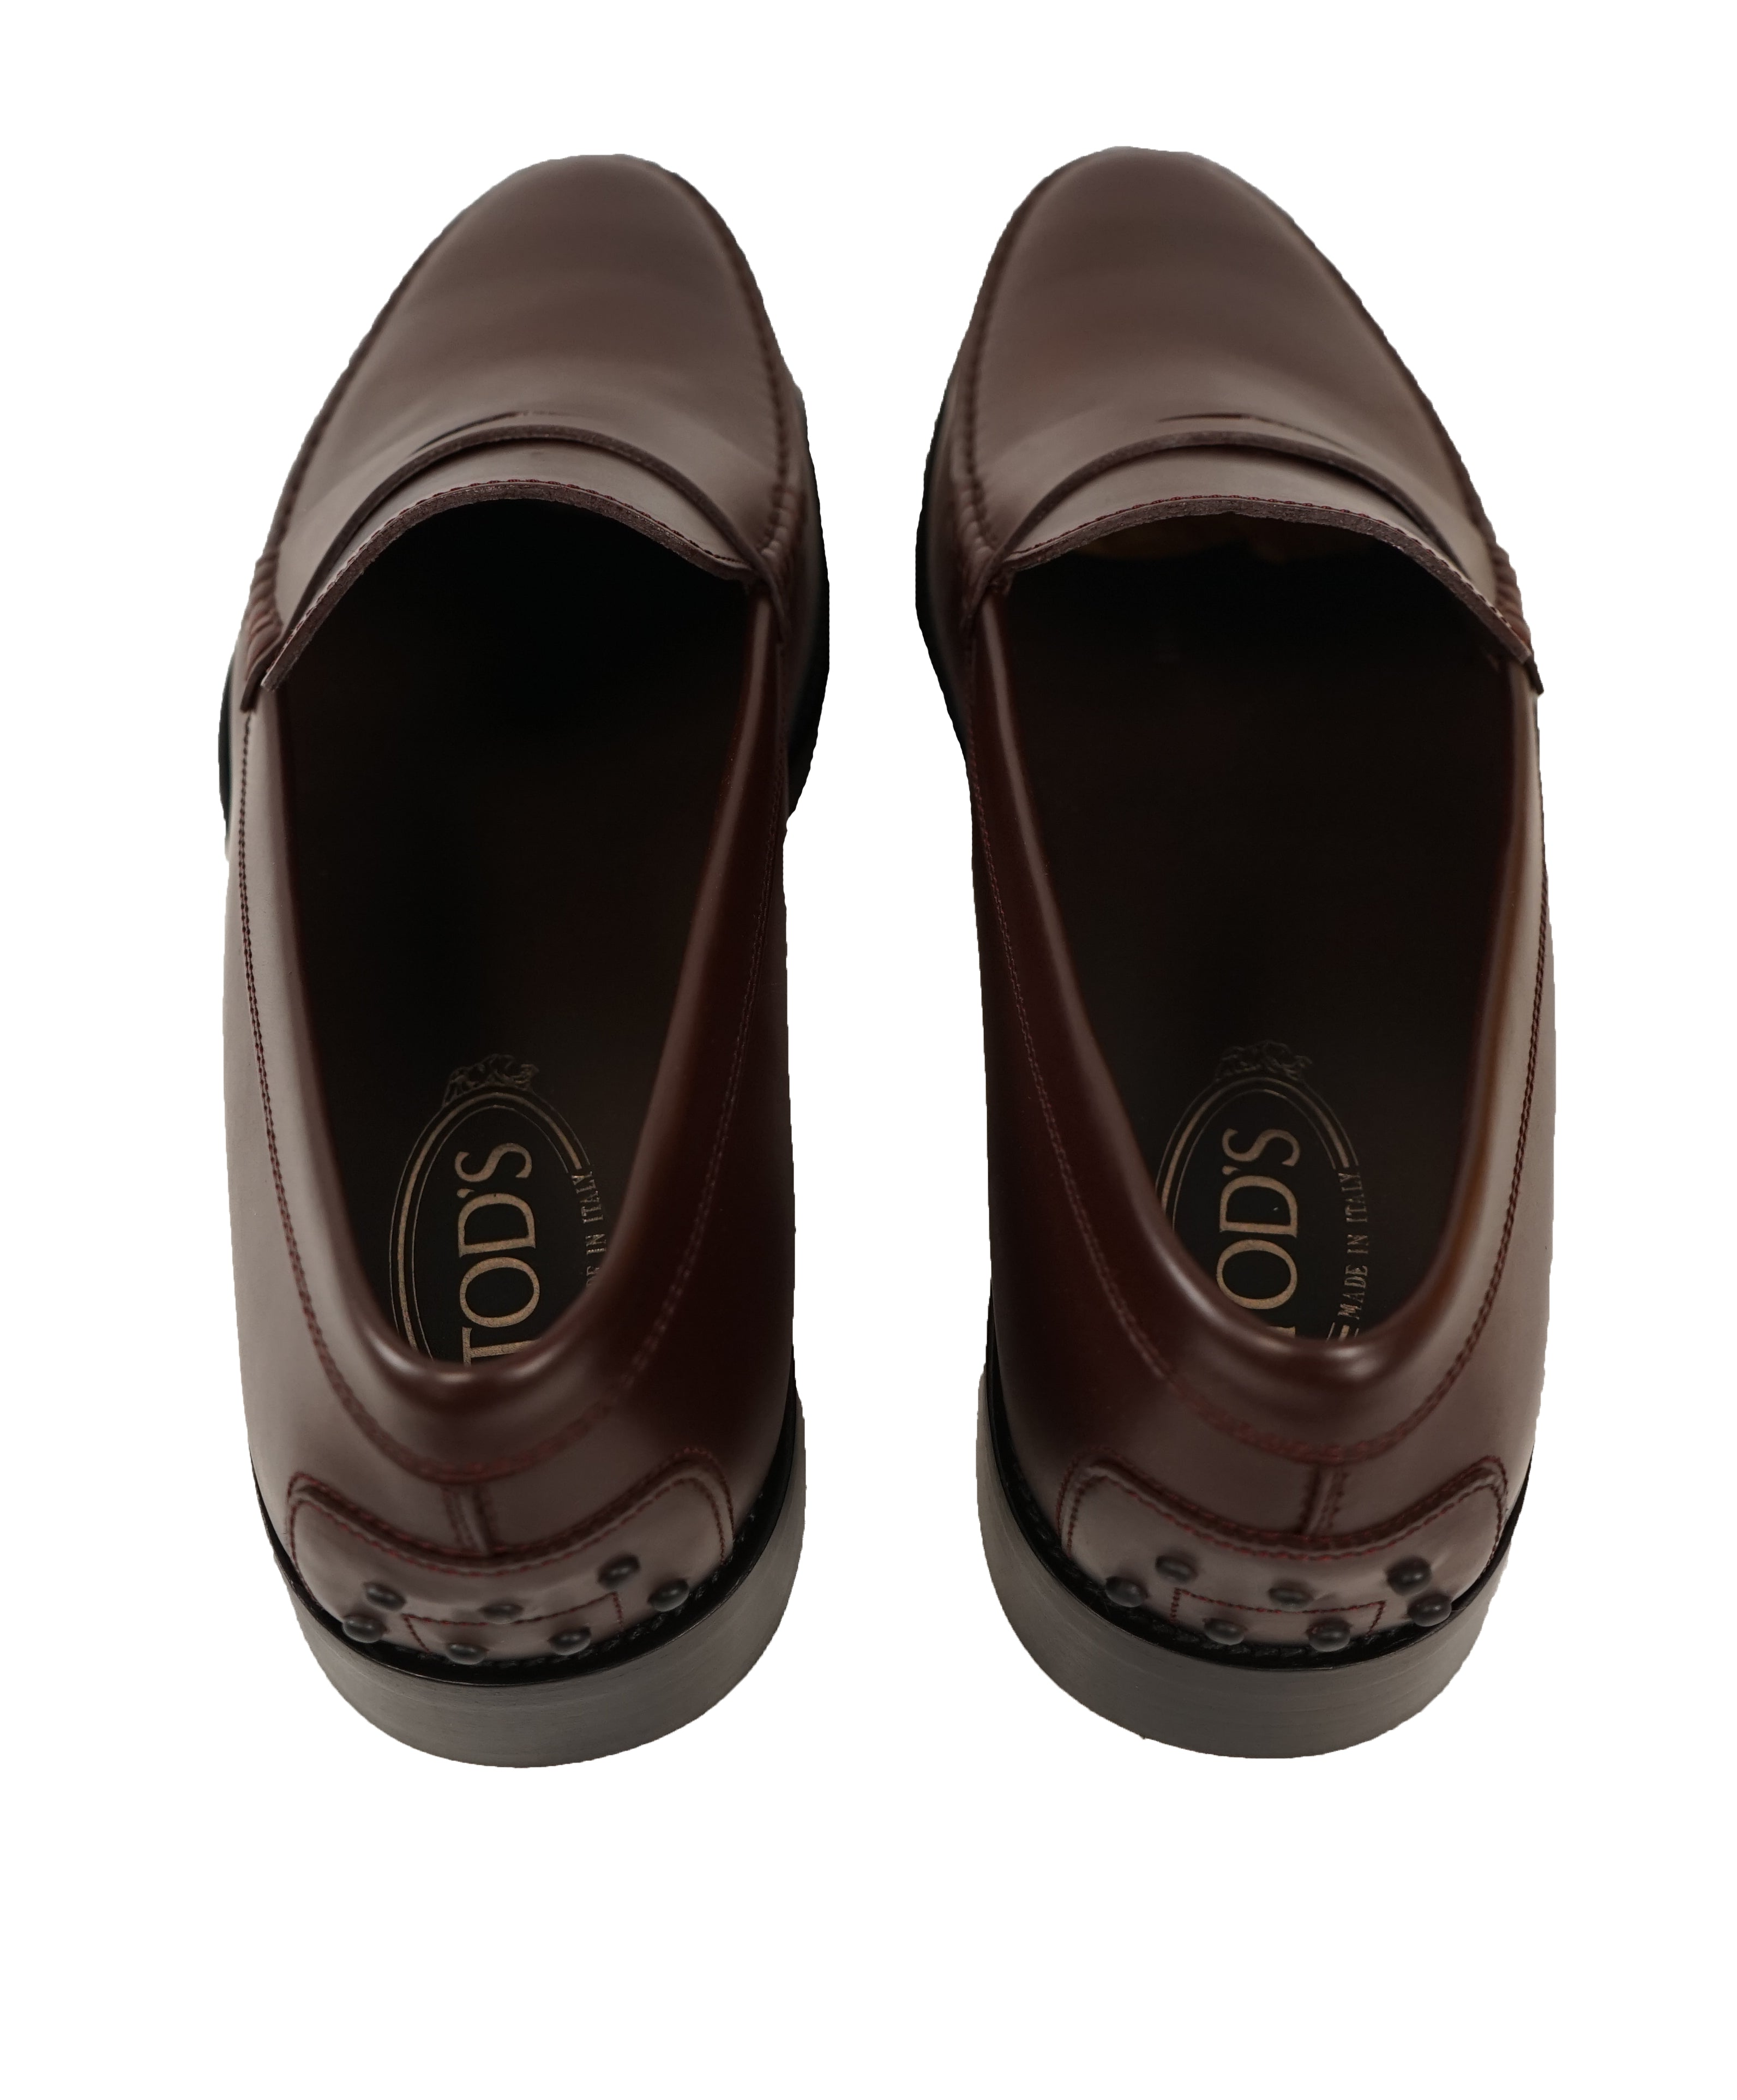 "TOD'S - Burgundy Oxblood Leather Penny Loafers ""Boston Devon"" Leather Sole - 12US"